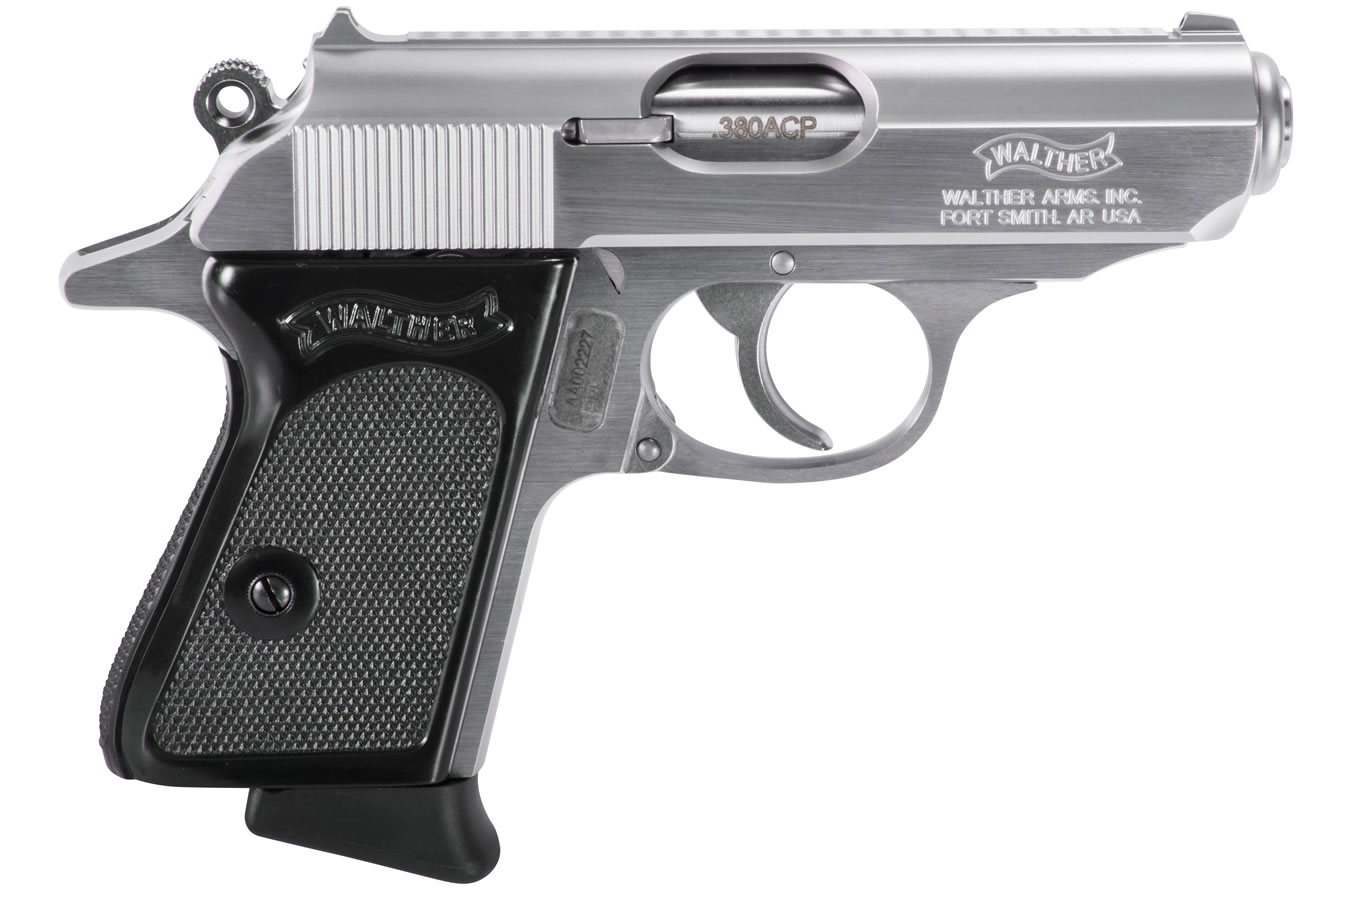 No. 4 Best Selling: WALTHER PPK 380 ACP STAINLESS 6 RND MAG